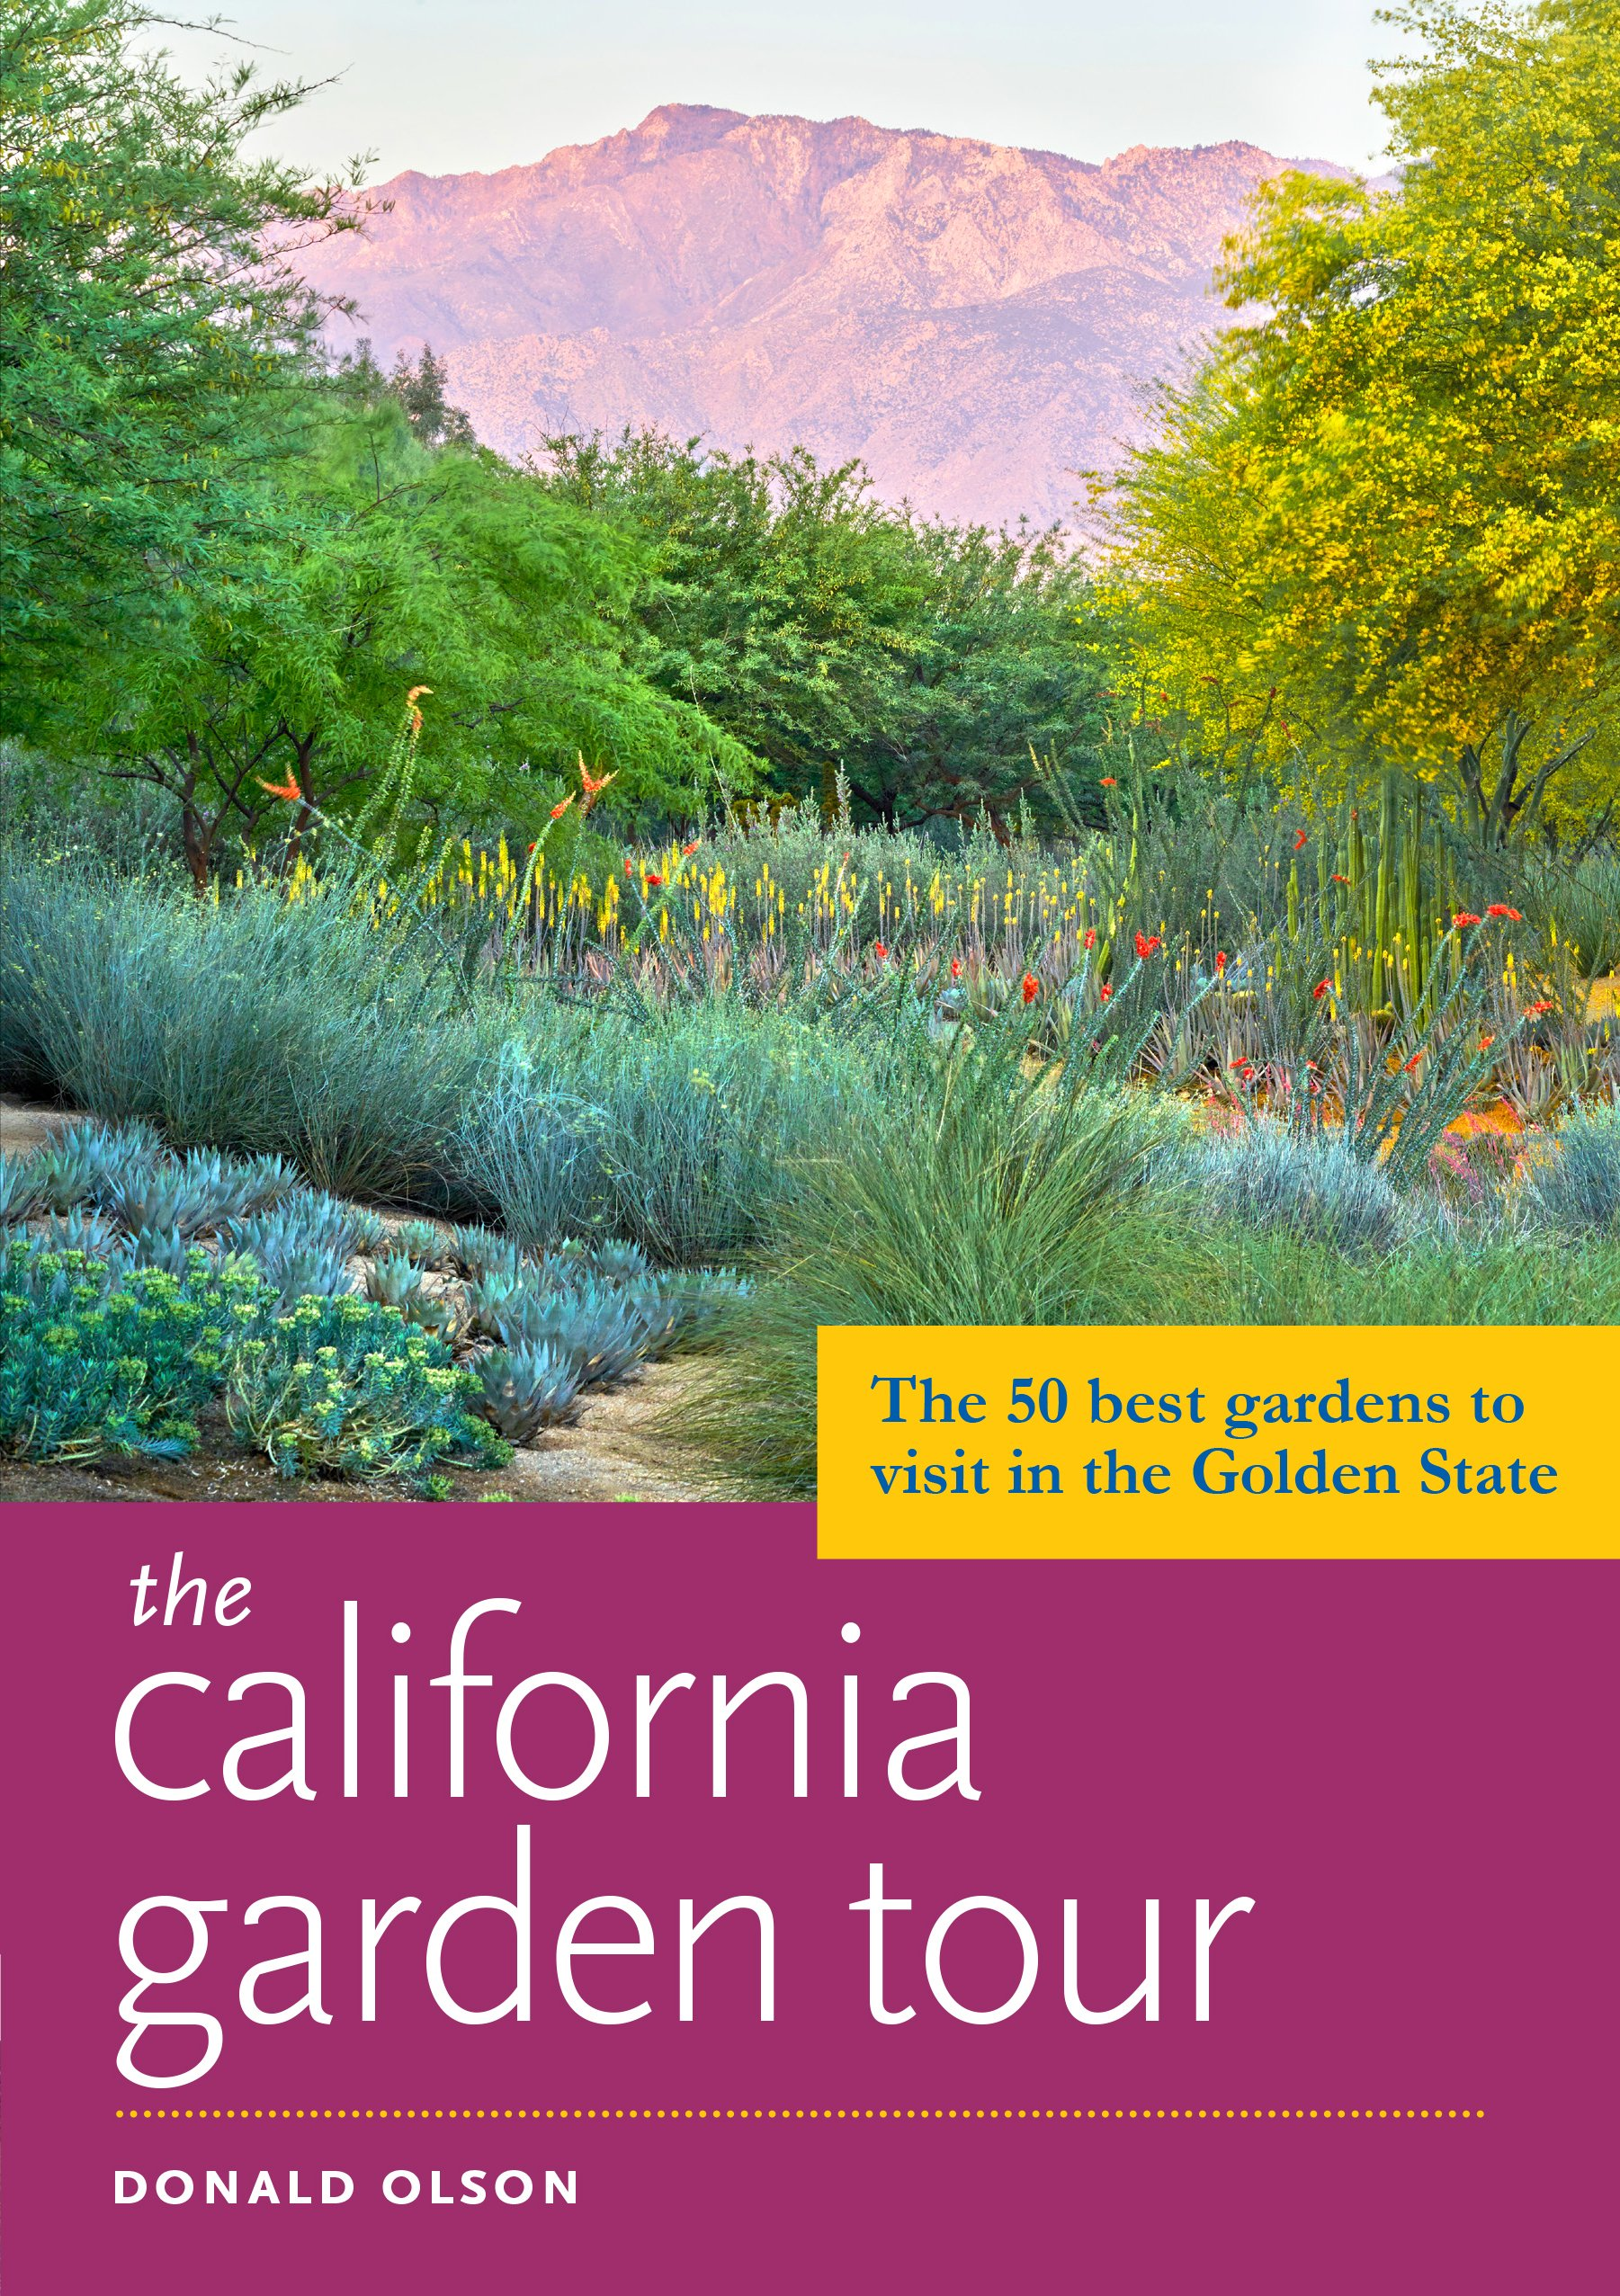 The California Garden Tour: The 50 Best Gardens to Visit in the Golden State Paperback – August 9, 2017 Donald Olson Timber Press 1604697229 Regional - West (Ak